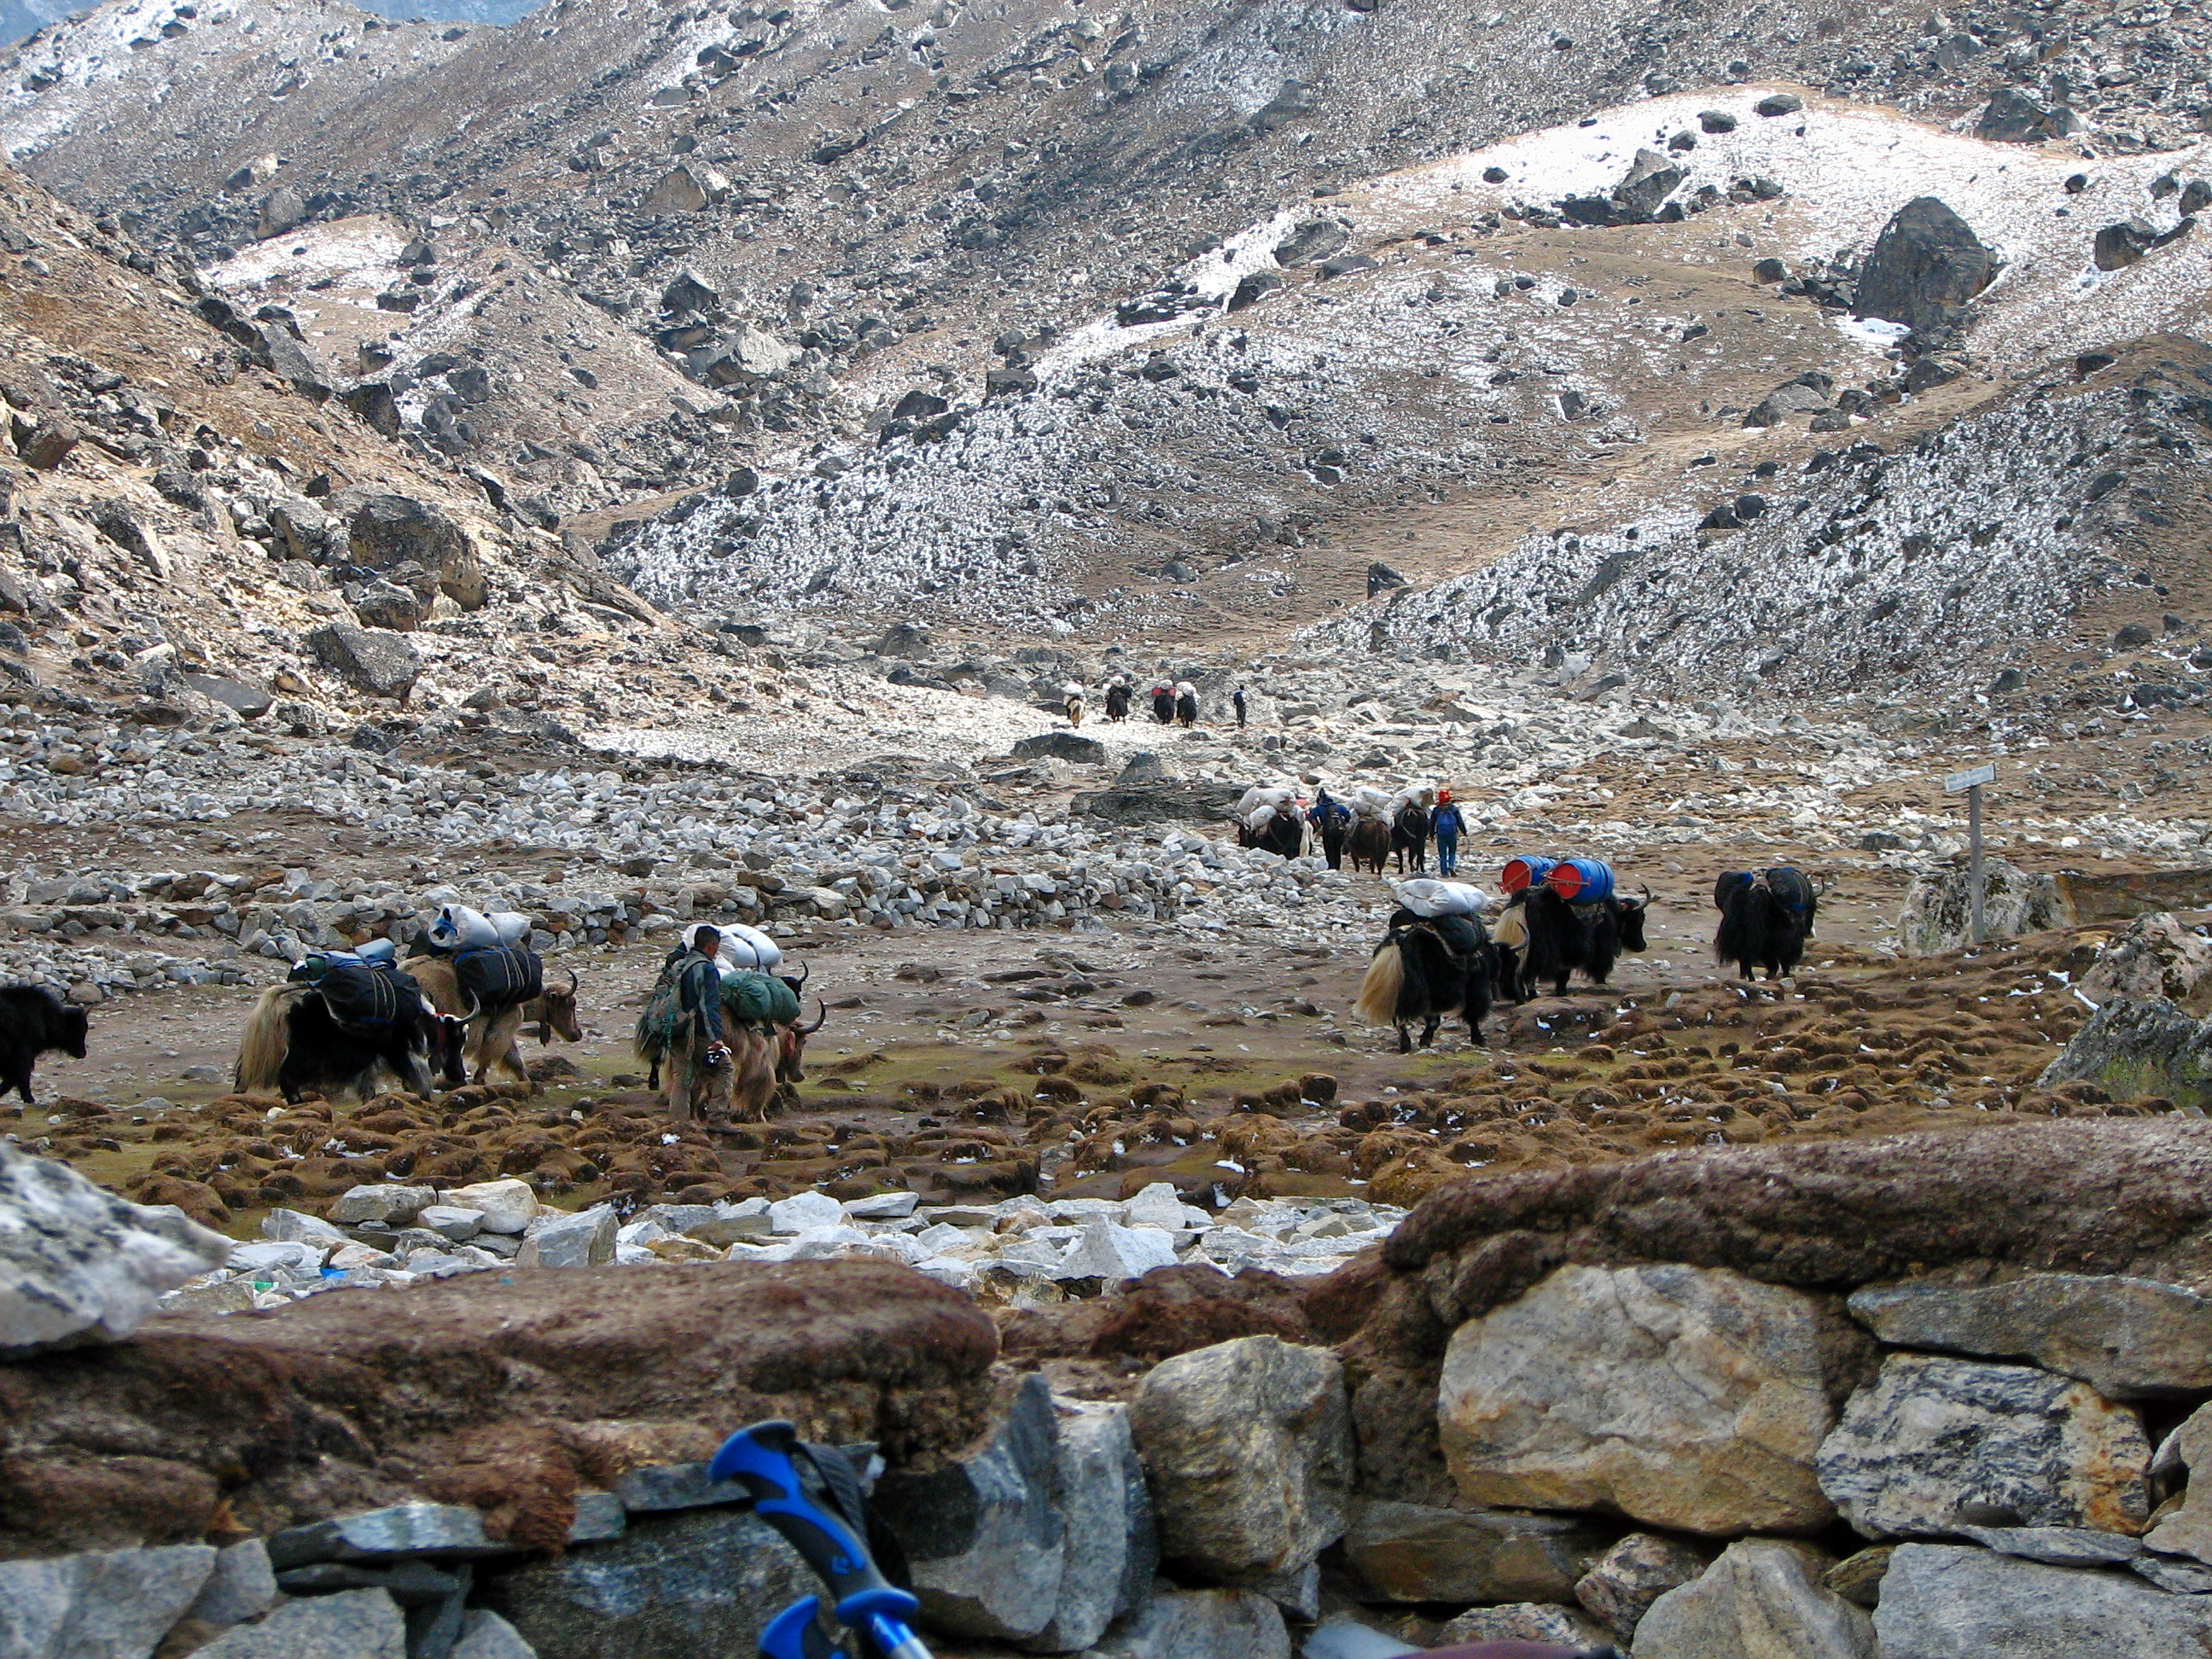 1486972159_nepal_-_sagamartha_trek_-_165_-_yak_train_to_ebc_(497677658).jpg